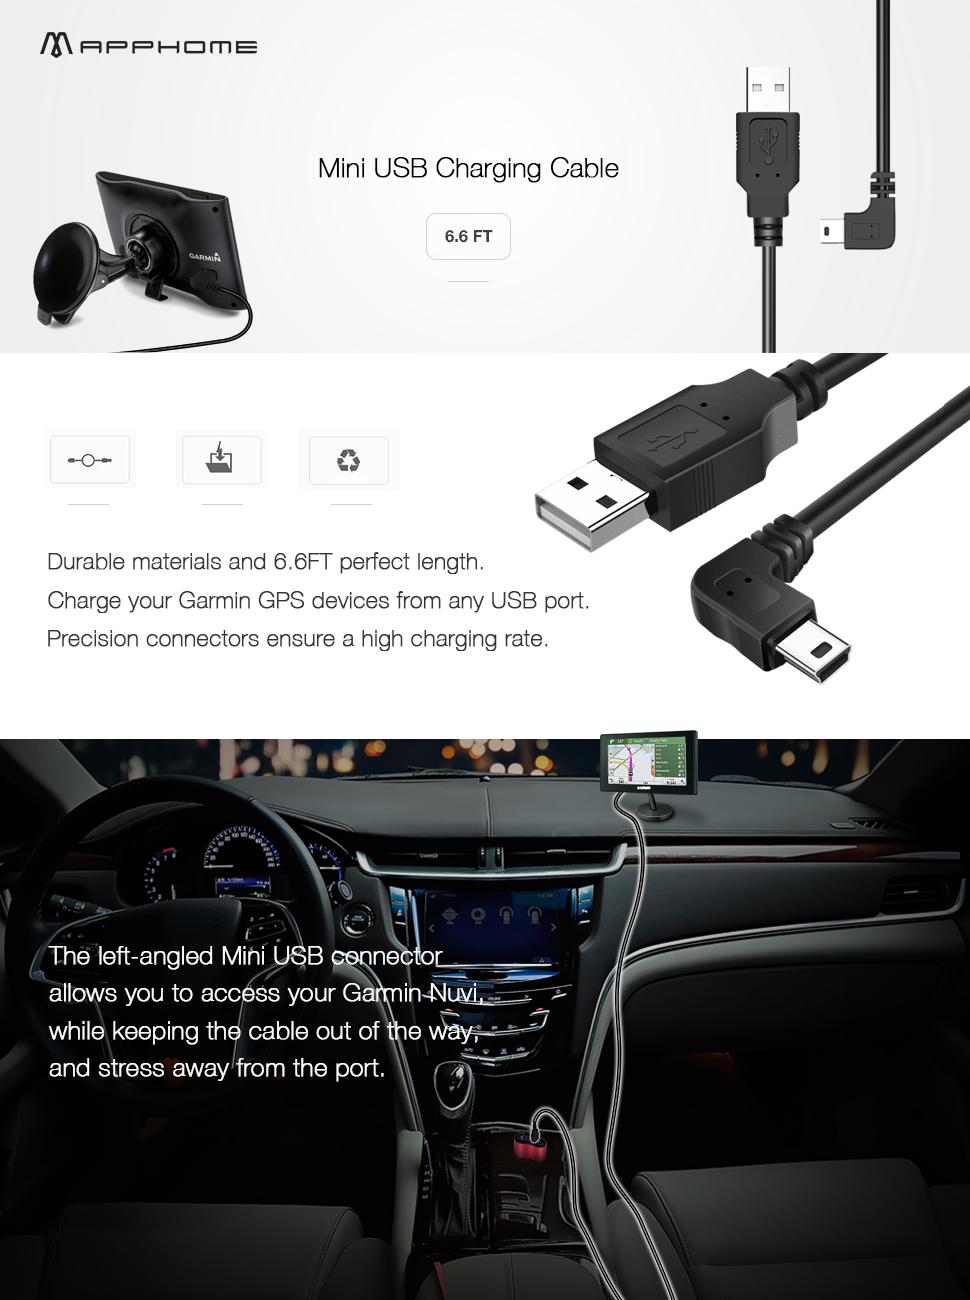 Mini Usb Charging Cable Compatible For Garmin Nuvi Wiring Micro Connector Product Description